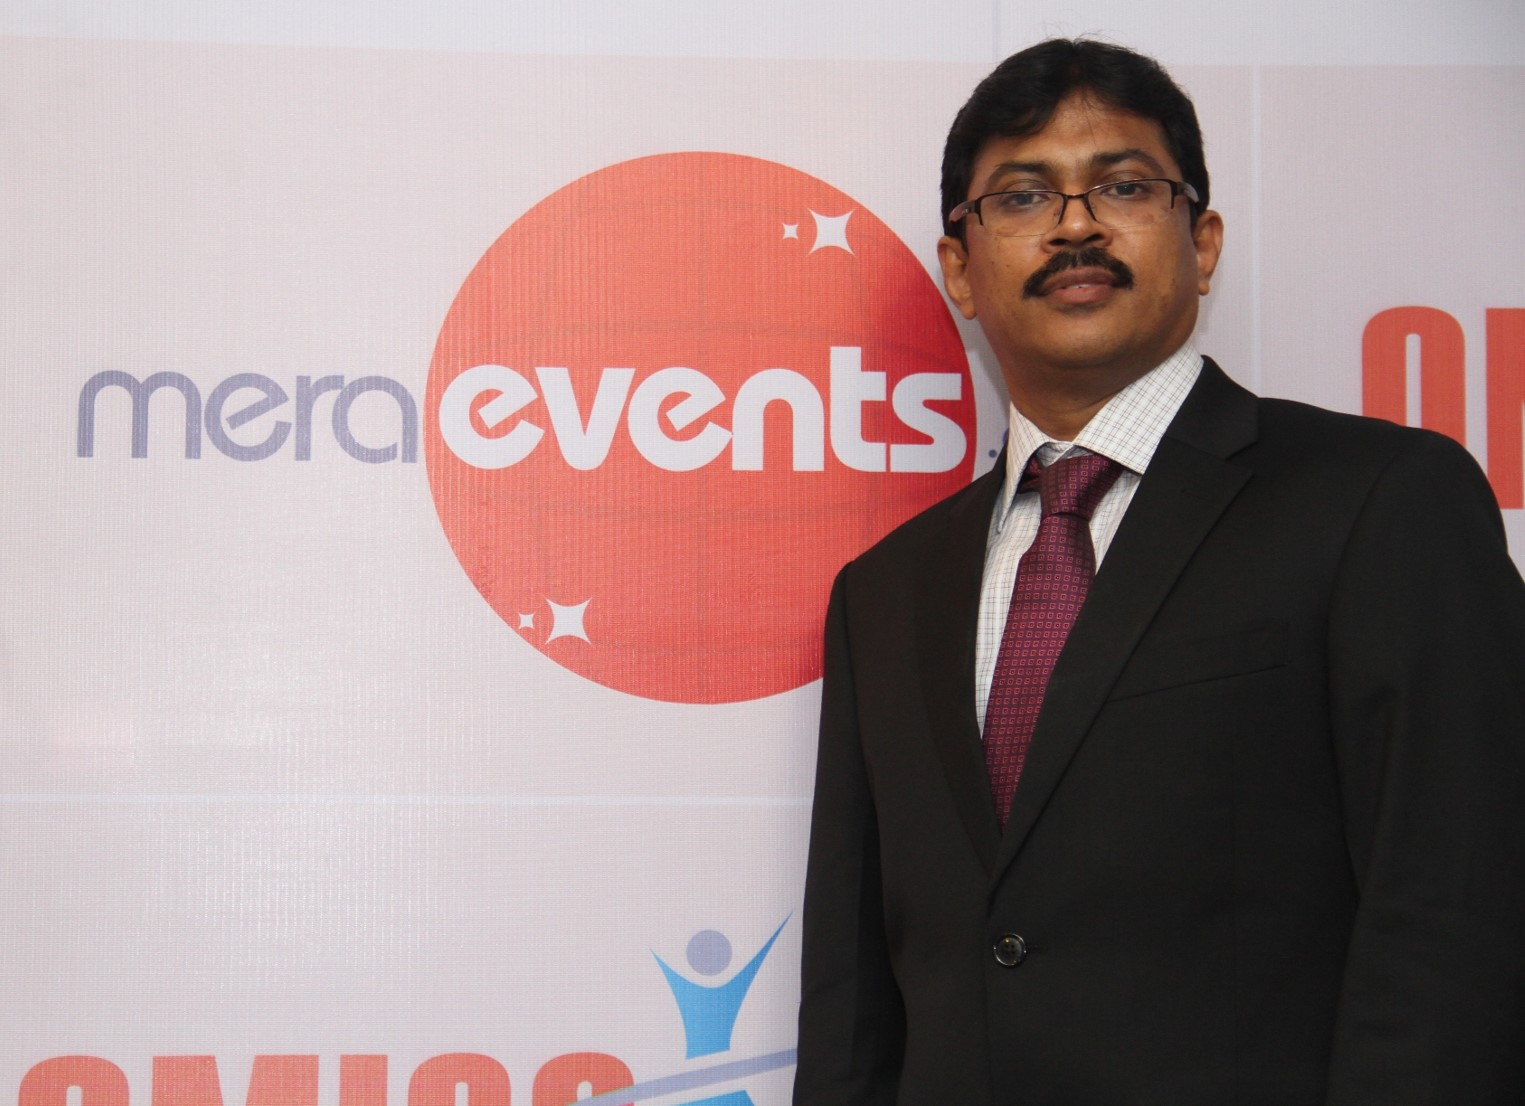 Mr. Chennapa Naidu Darapaneni, Founder & CEO, MeraEvents.com